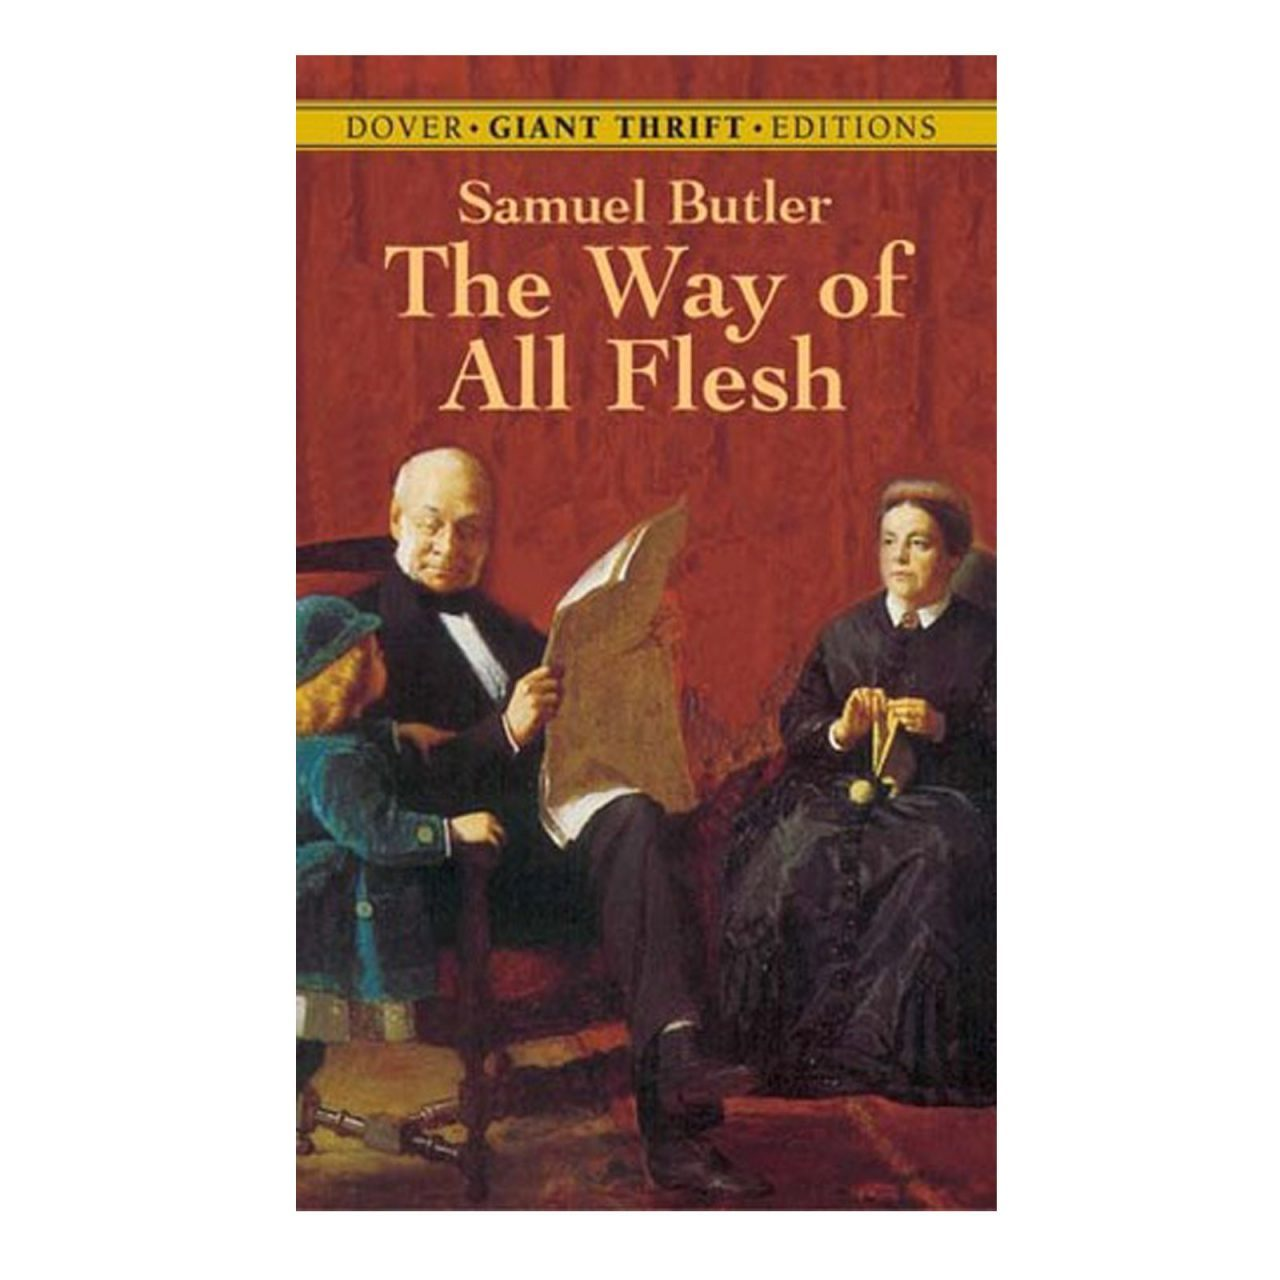 A Reader's Guide to Samuel Butler & The Way of all Flesh